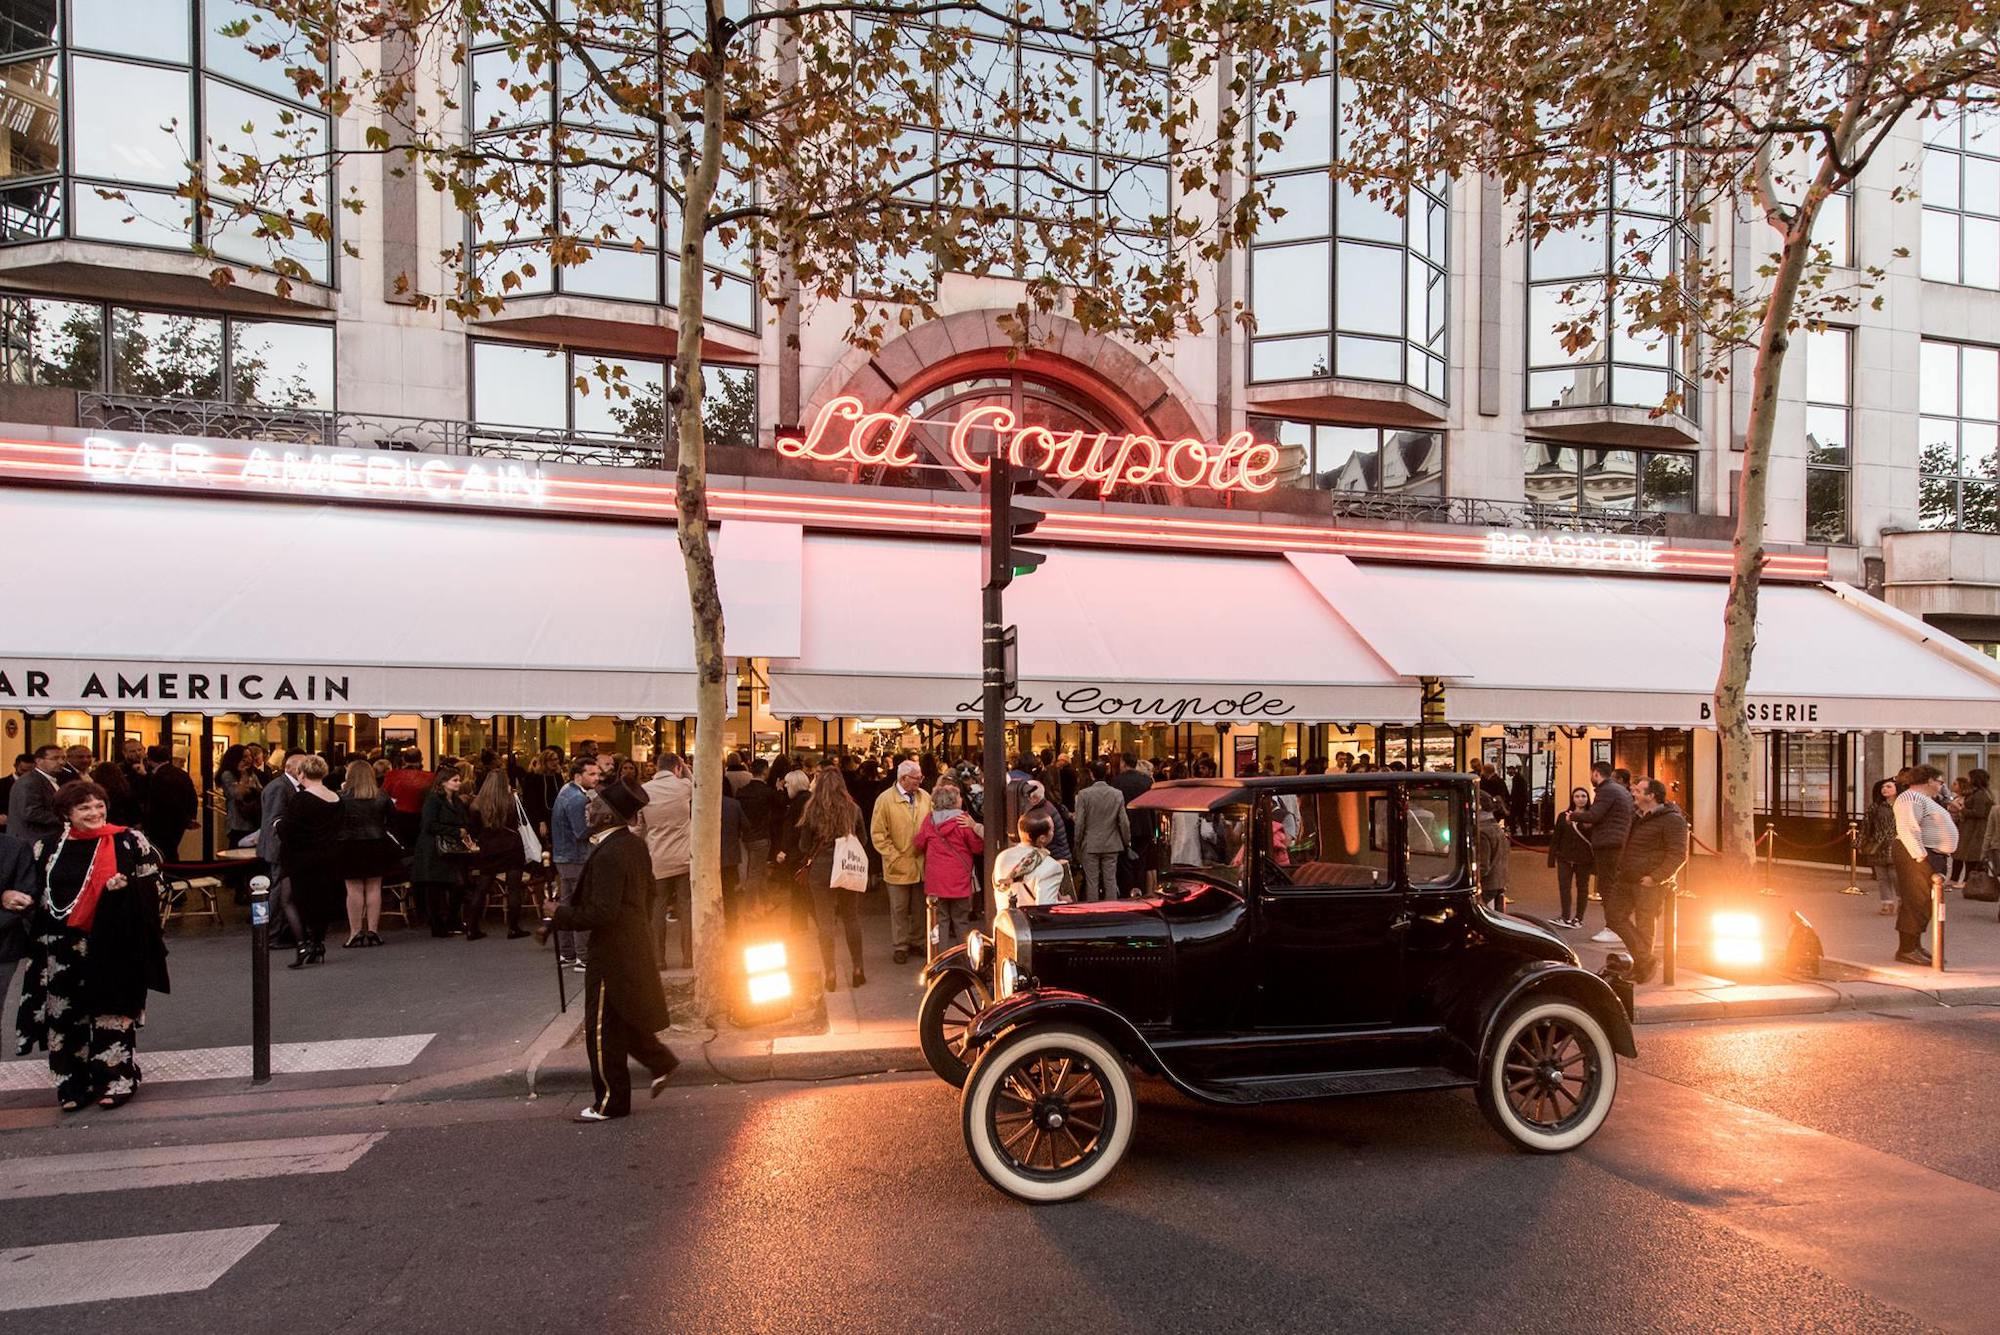 The exterior of La Coupole restaurant in Paris. A neon sign saying La Coupole, a white terrace shade, people standing in the terrace and an old fashioned black car parked out the front.